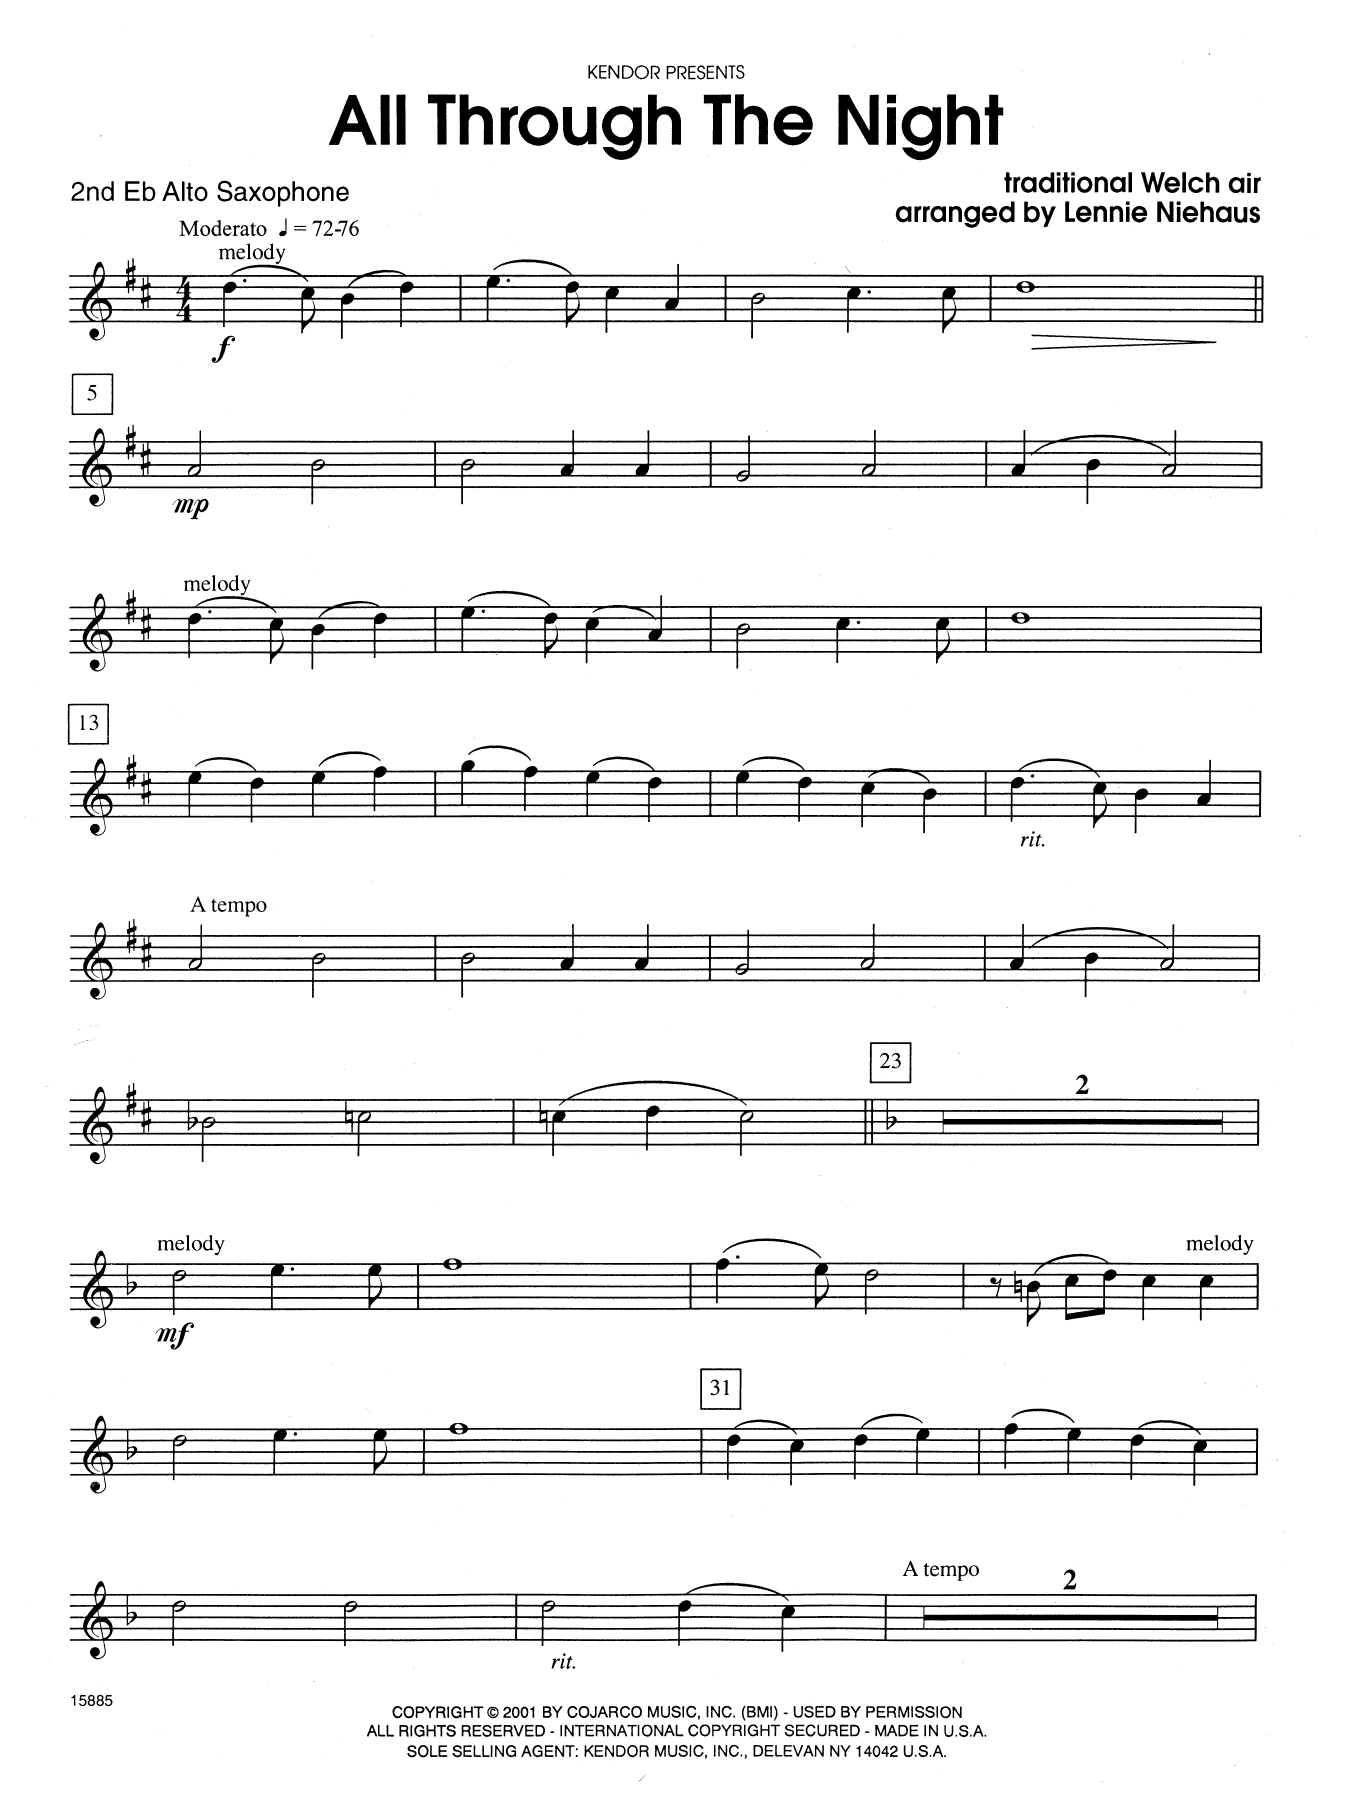 All Through the Night - 2nd Eb Alto Saxophone Sheet Music